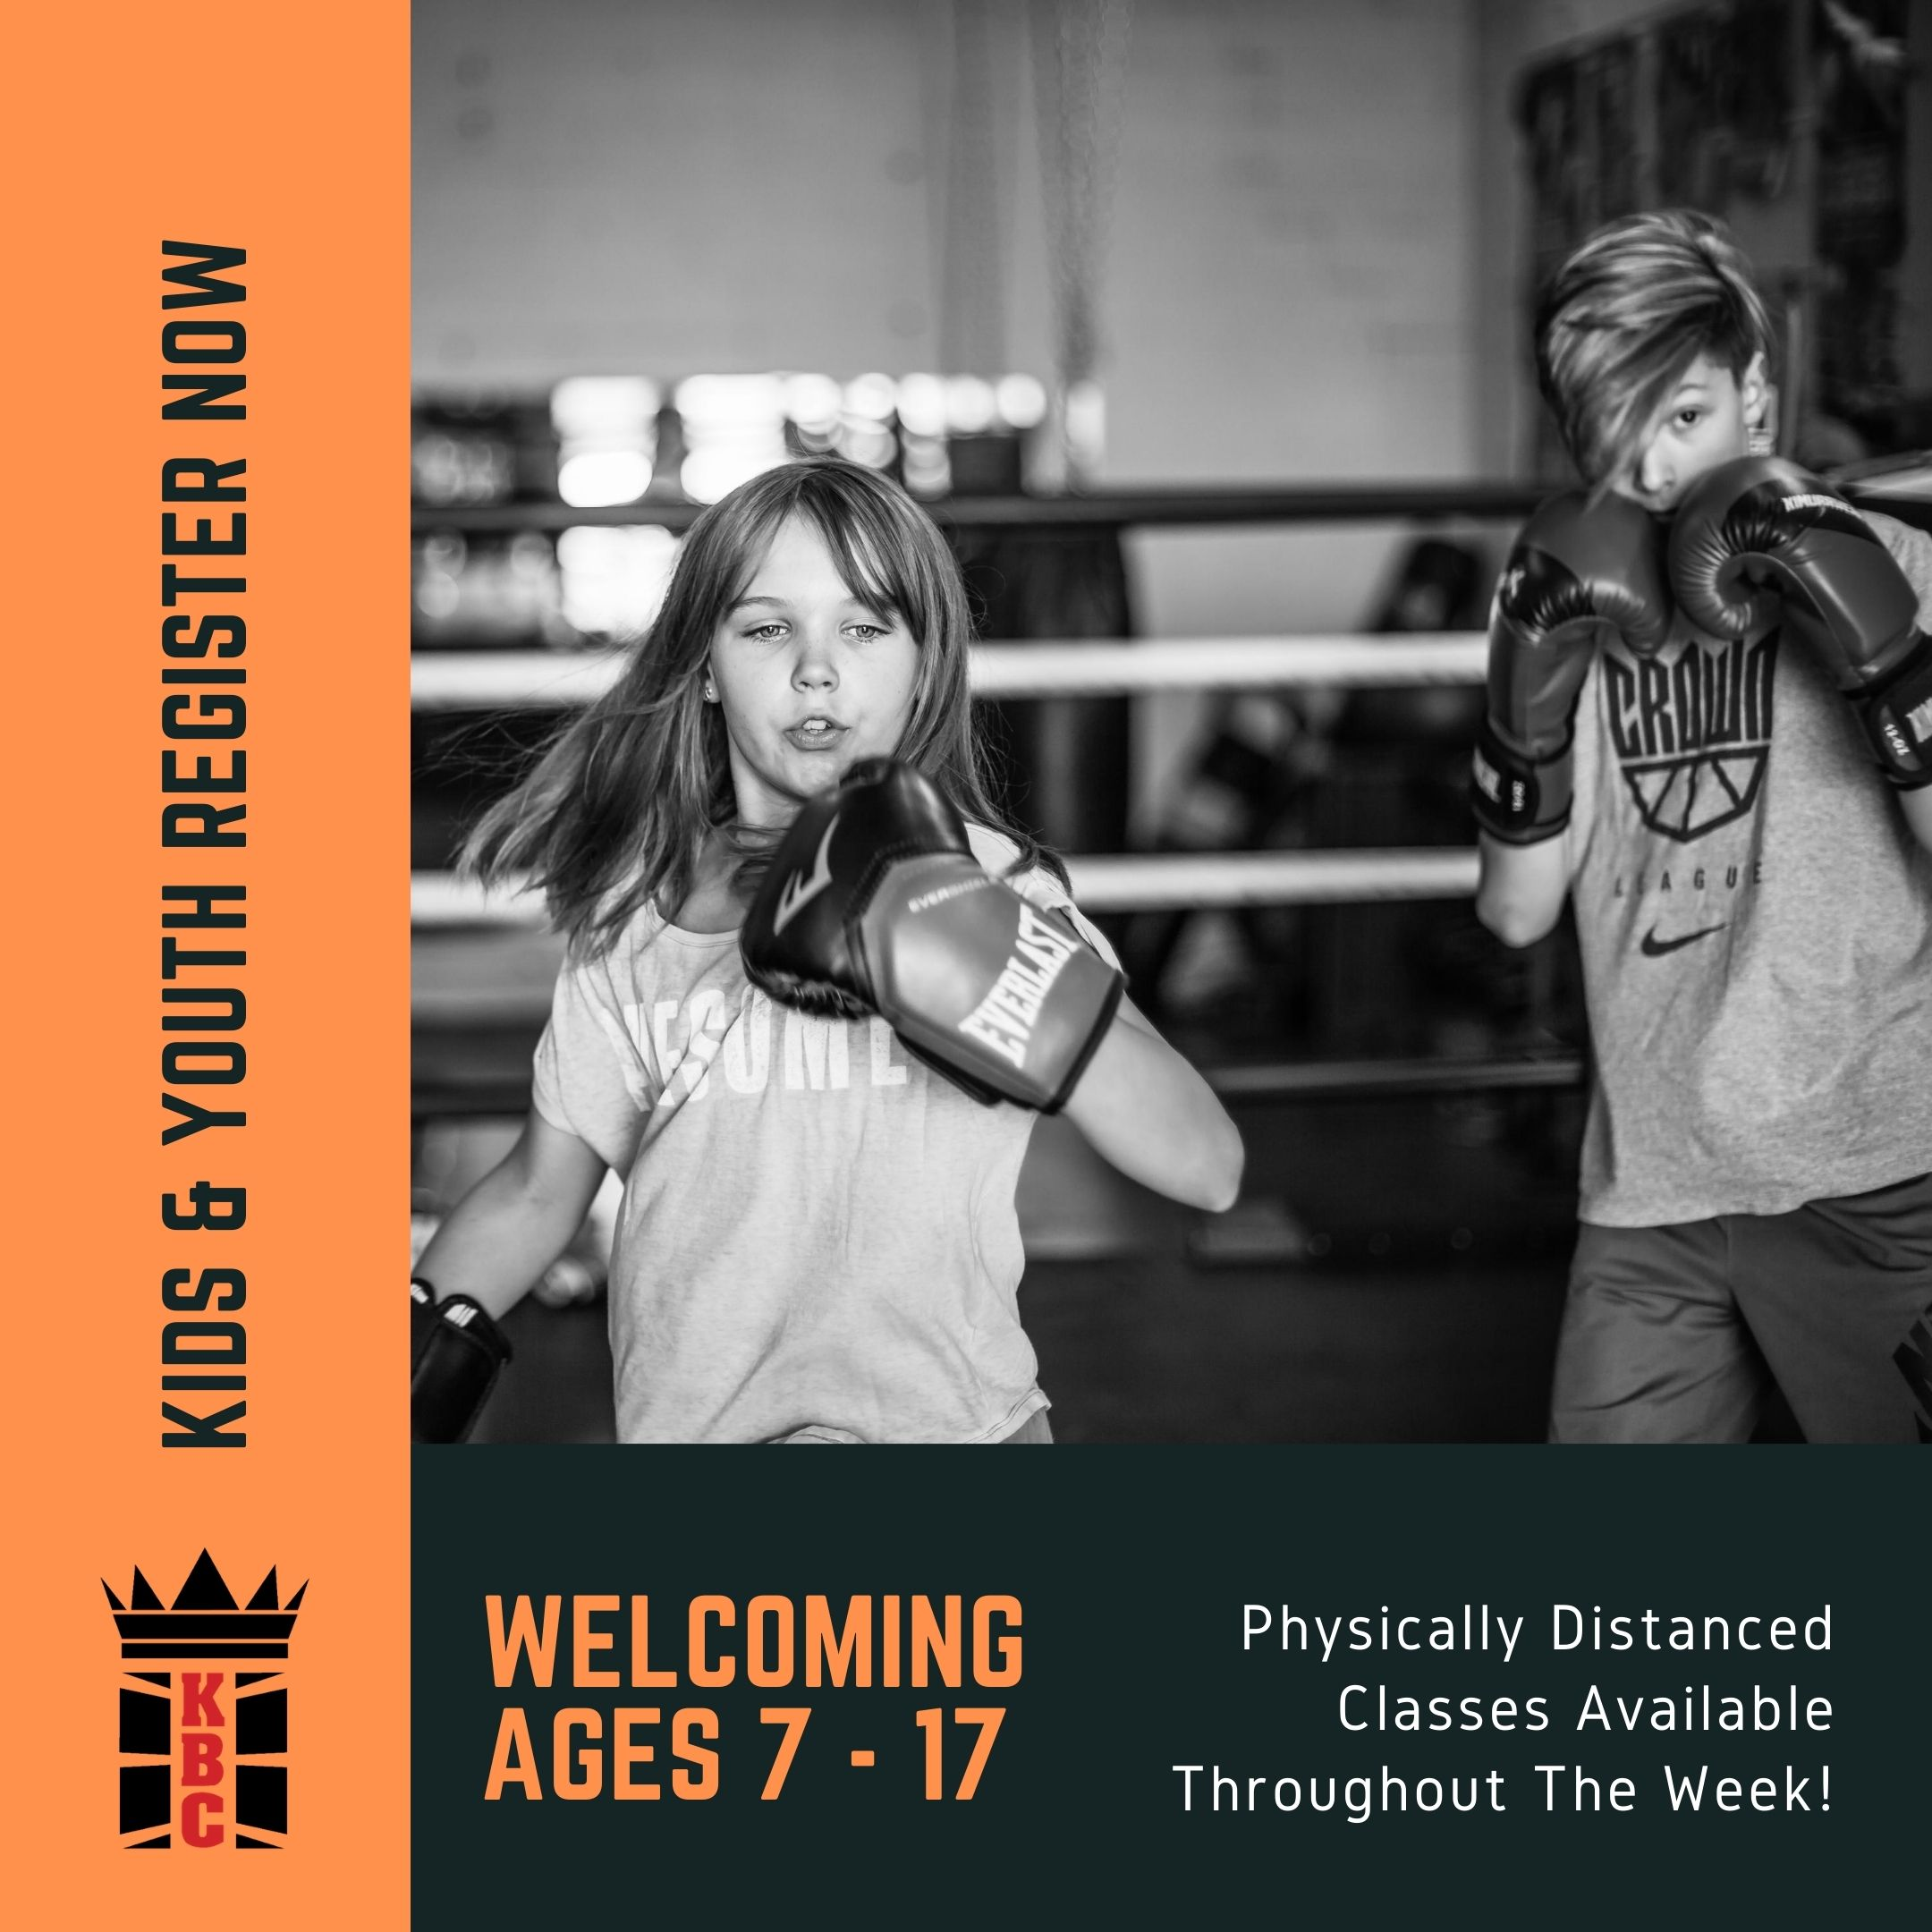 Calling All Kids & Teens – Boxing Is BACK! Kids 7+, Girls Only and Co-Ed Classes Now Available